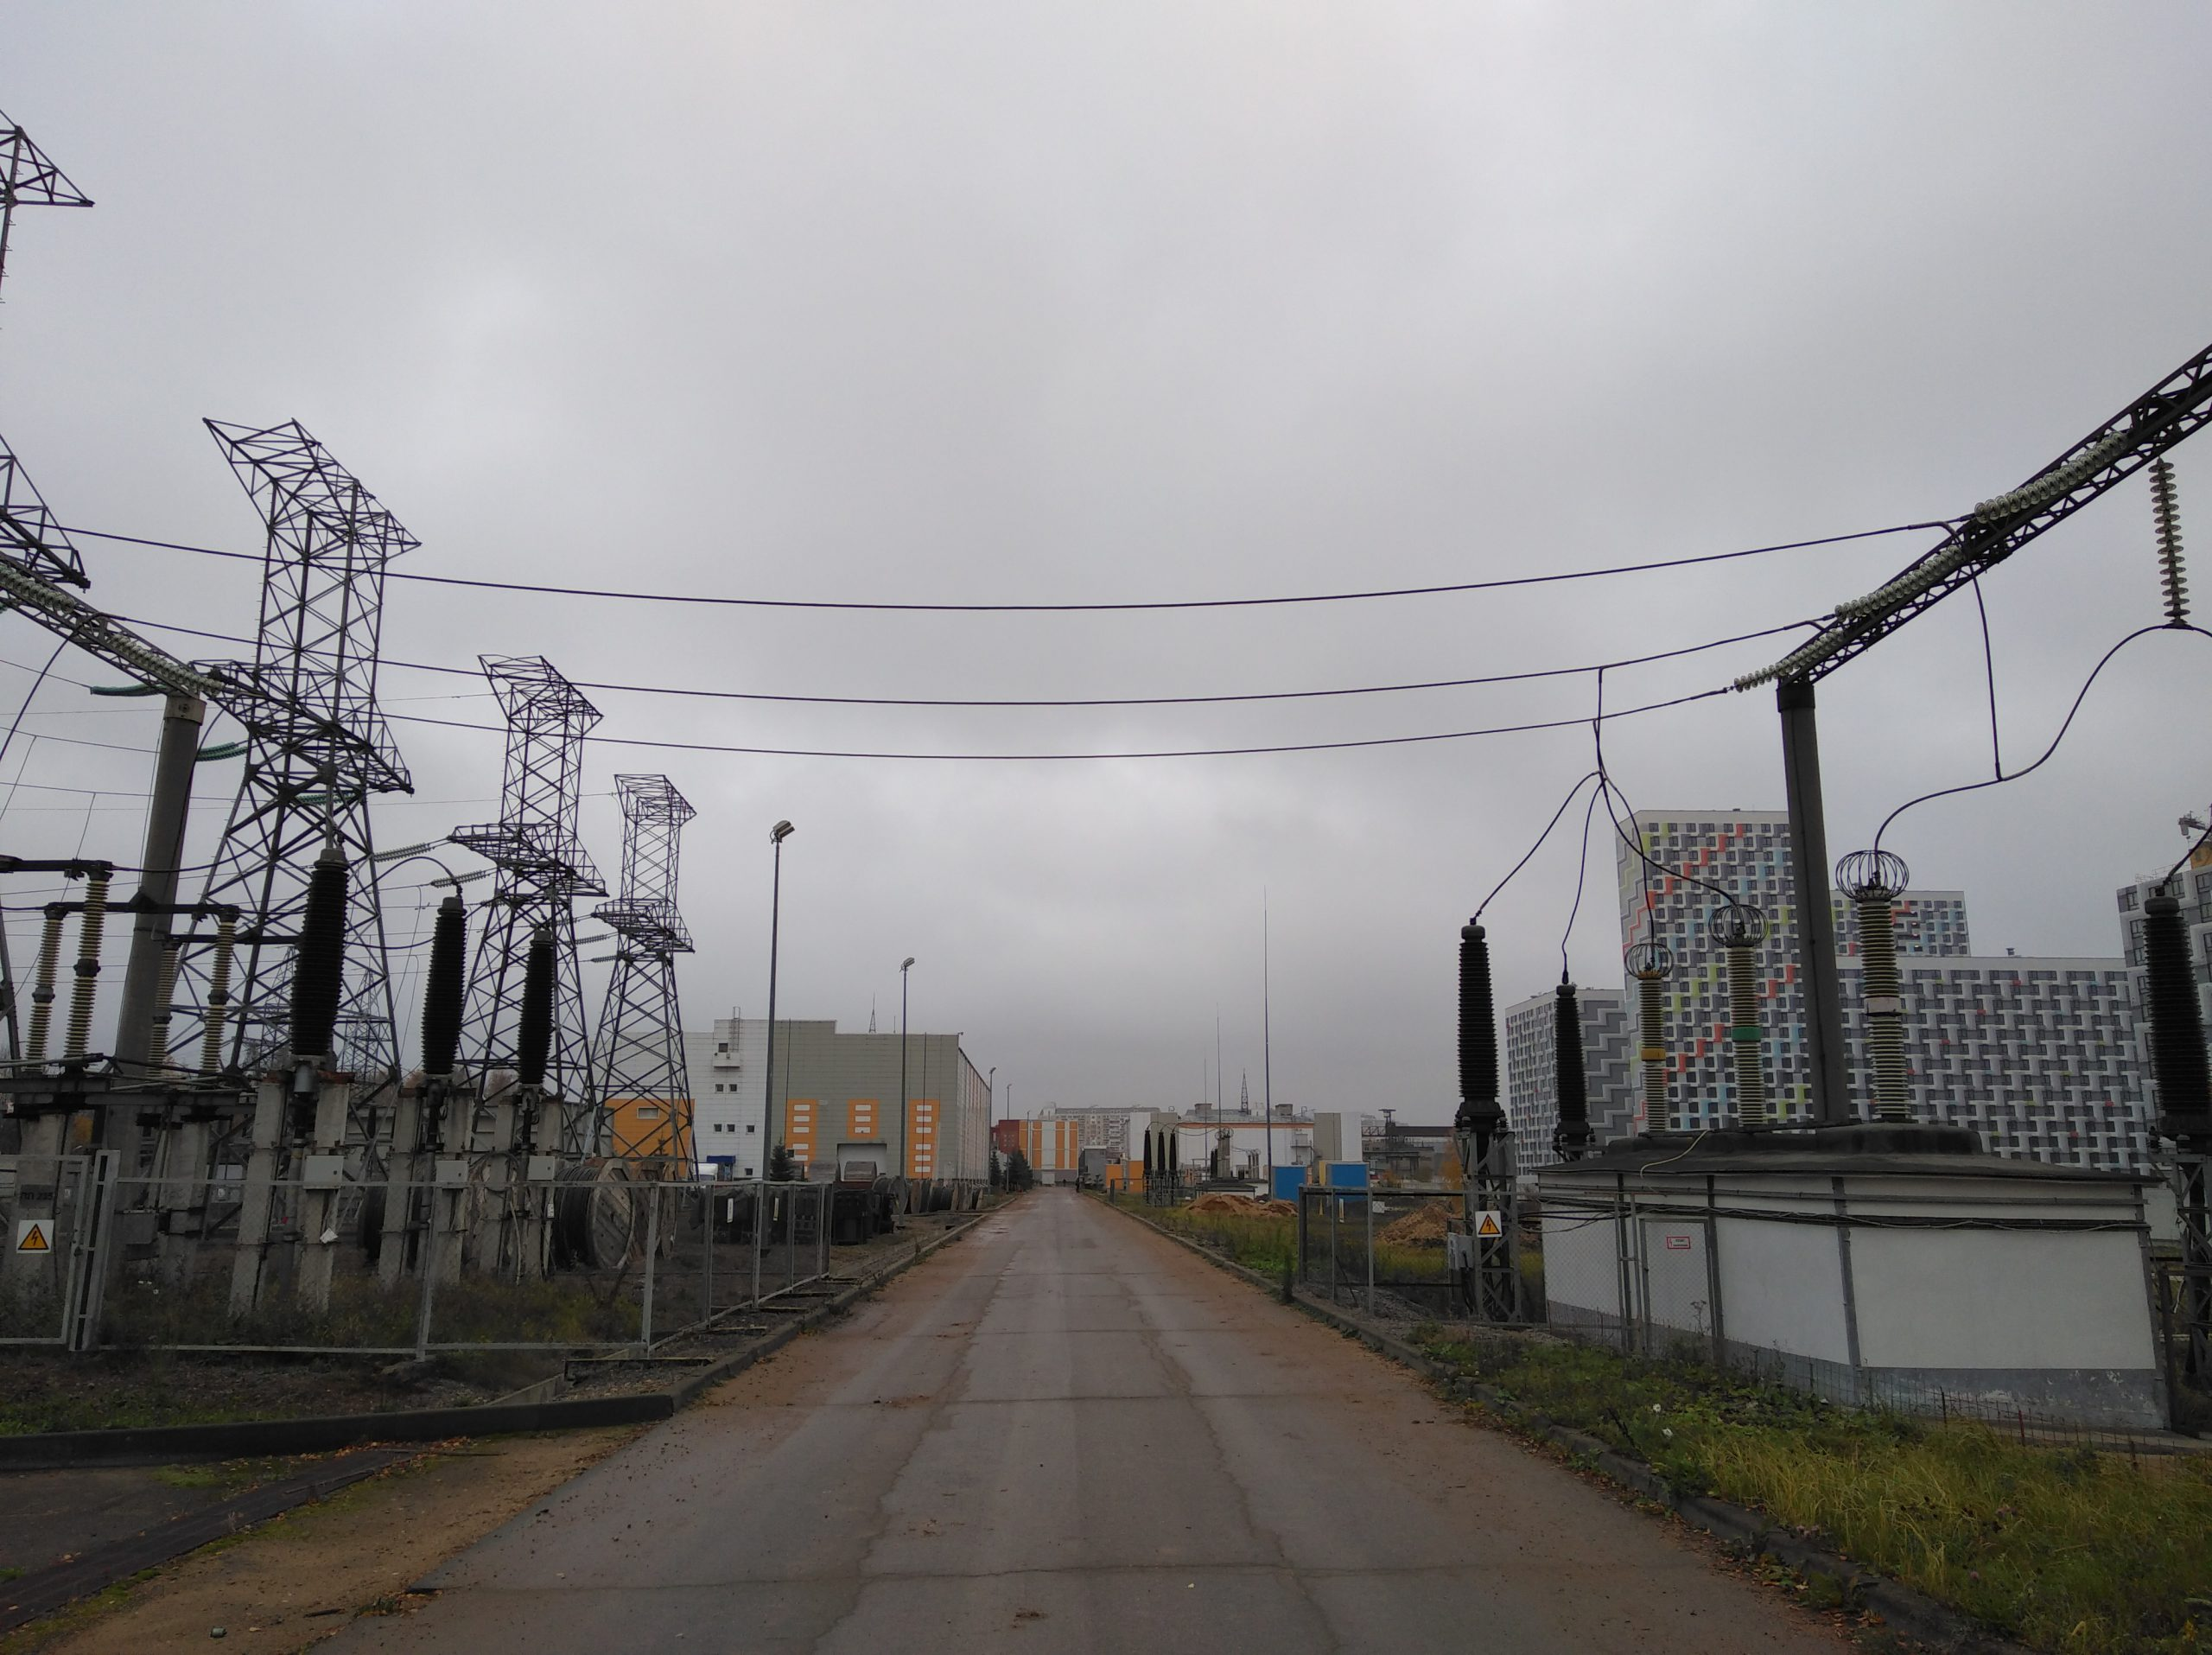 Substation No. 505 Beskudnikovo 500 kV (the customer: Centre for Engineering & Construction Management AO (JSC)), was launched into operation